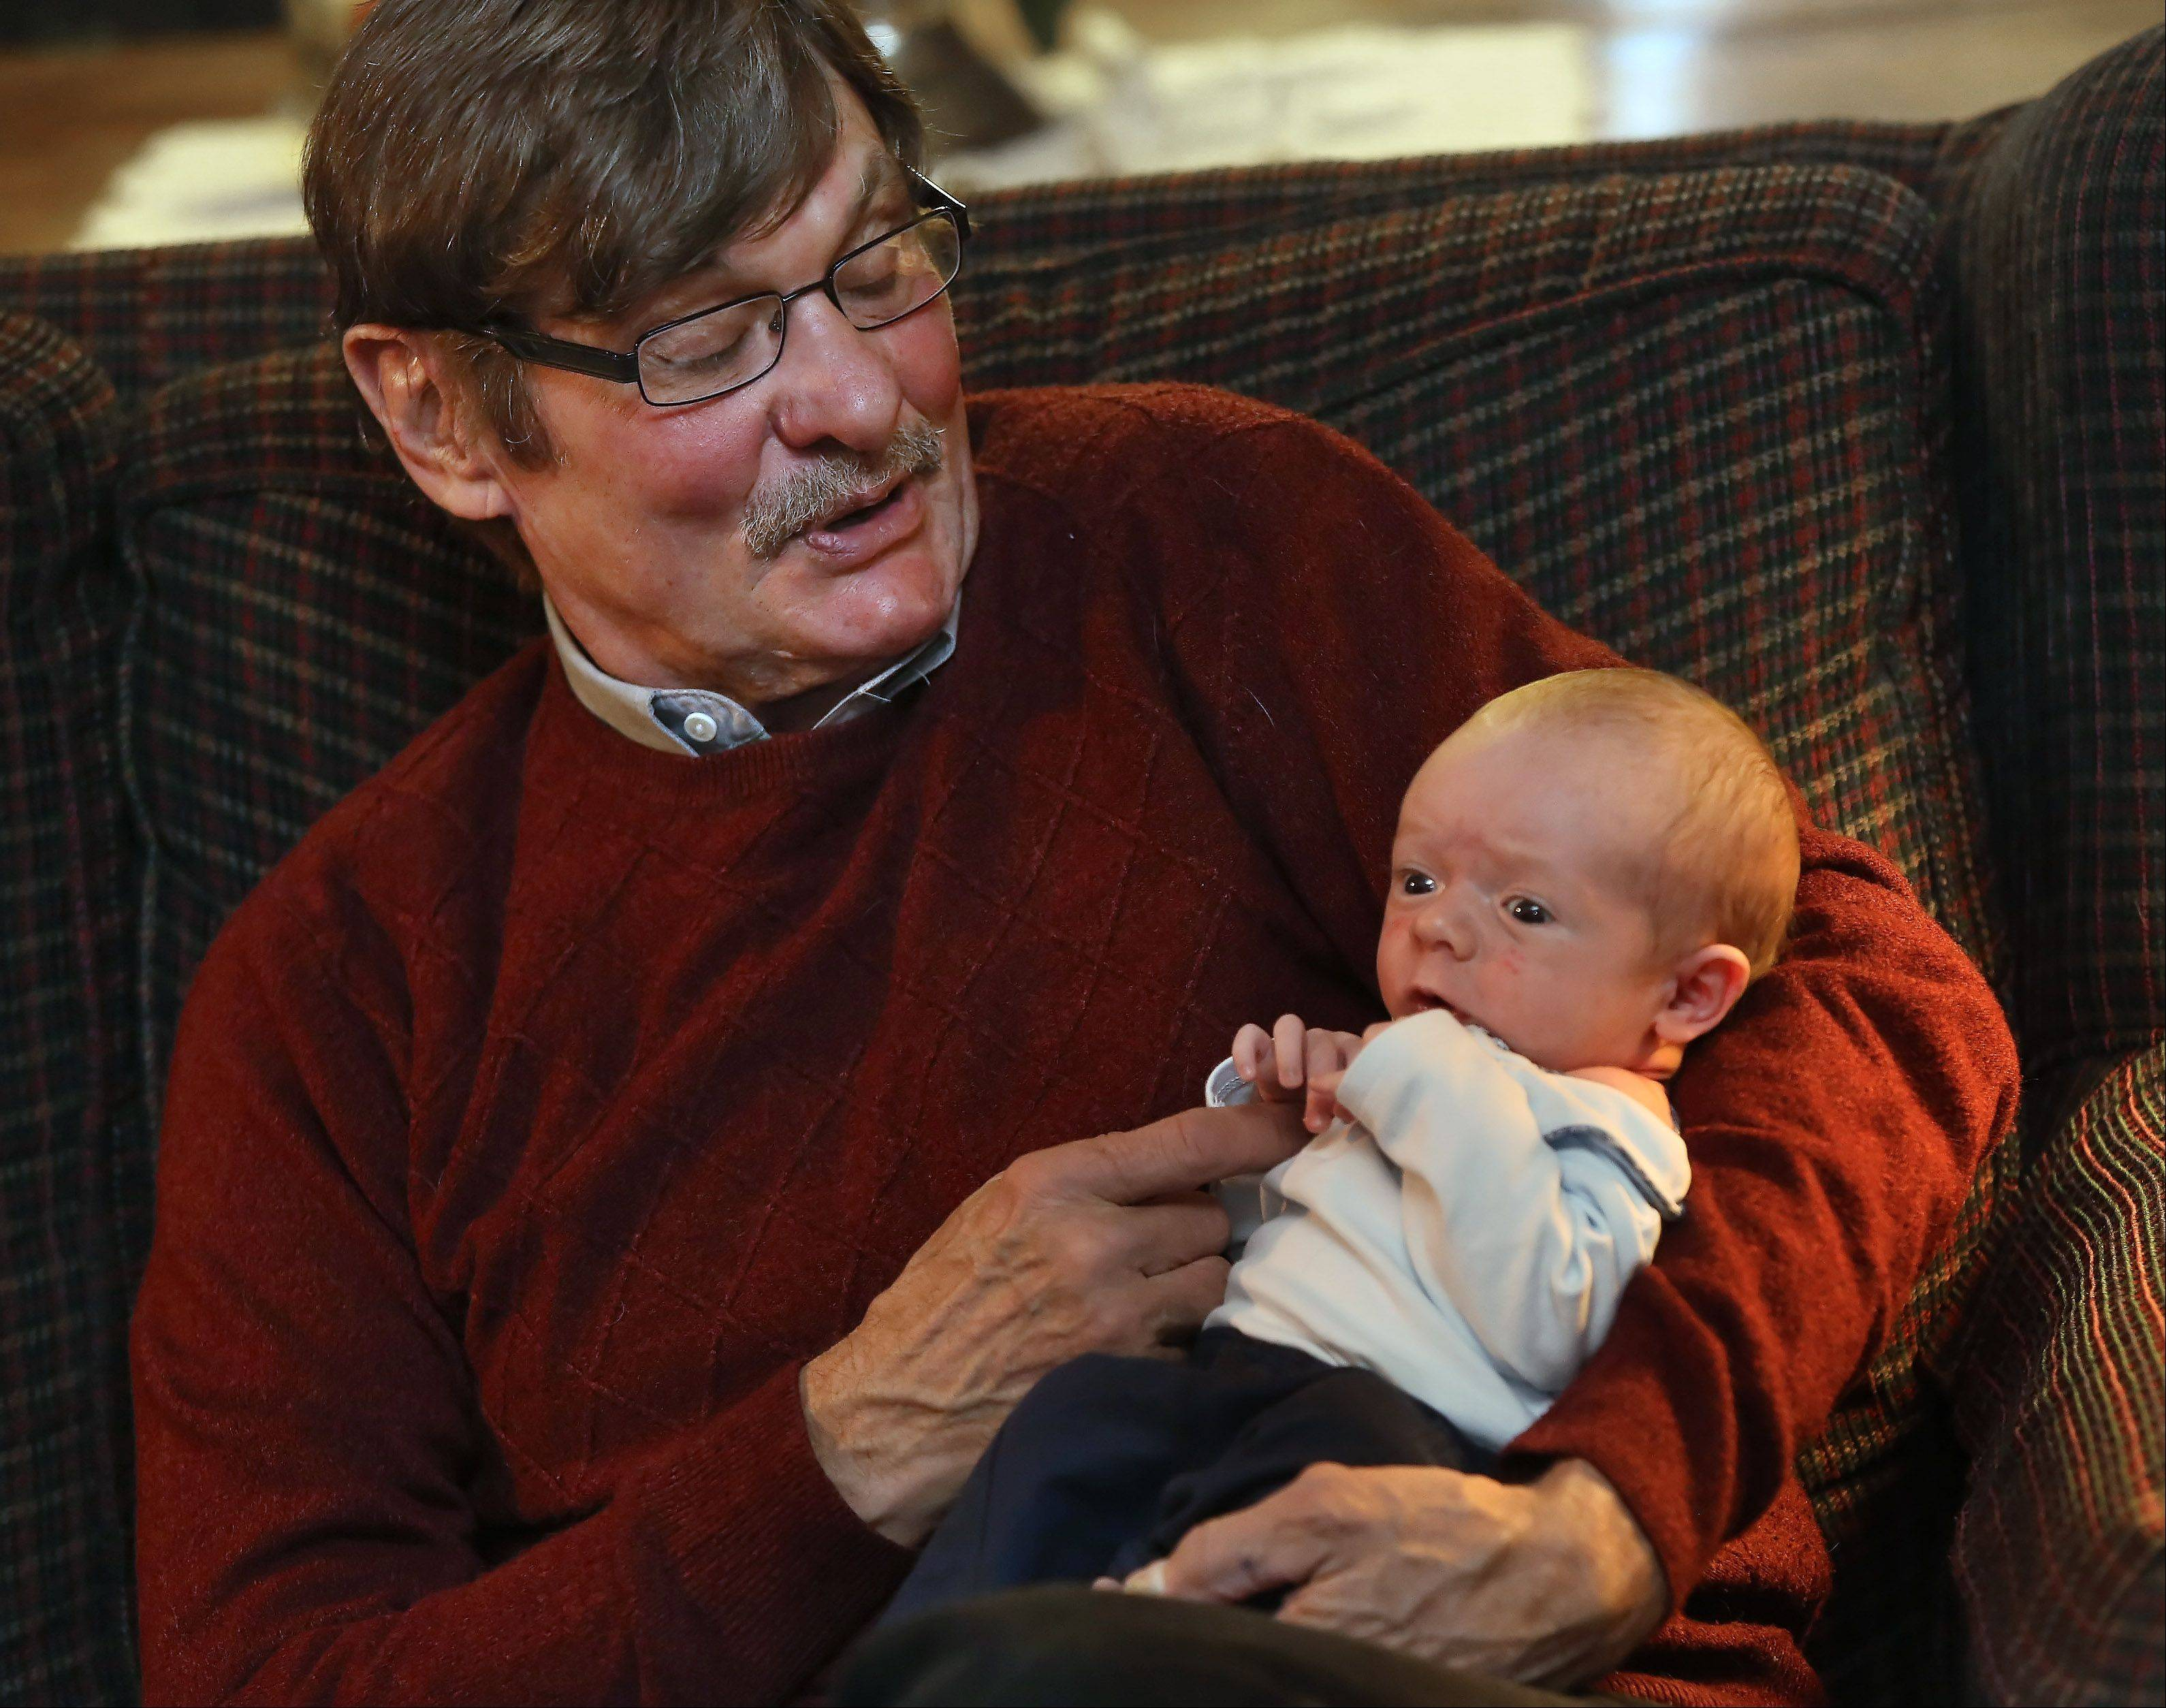 Former Wauconda Mayor Mark Knigge has been spending time with his 3-week-old grandson, Conner.